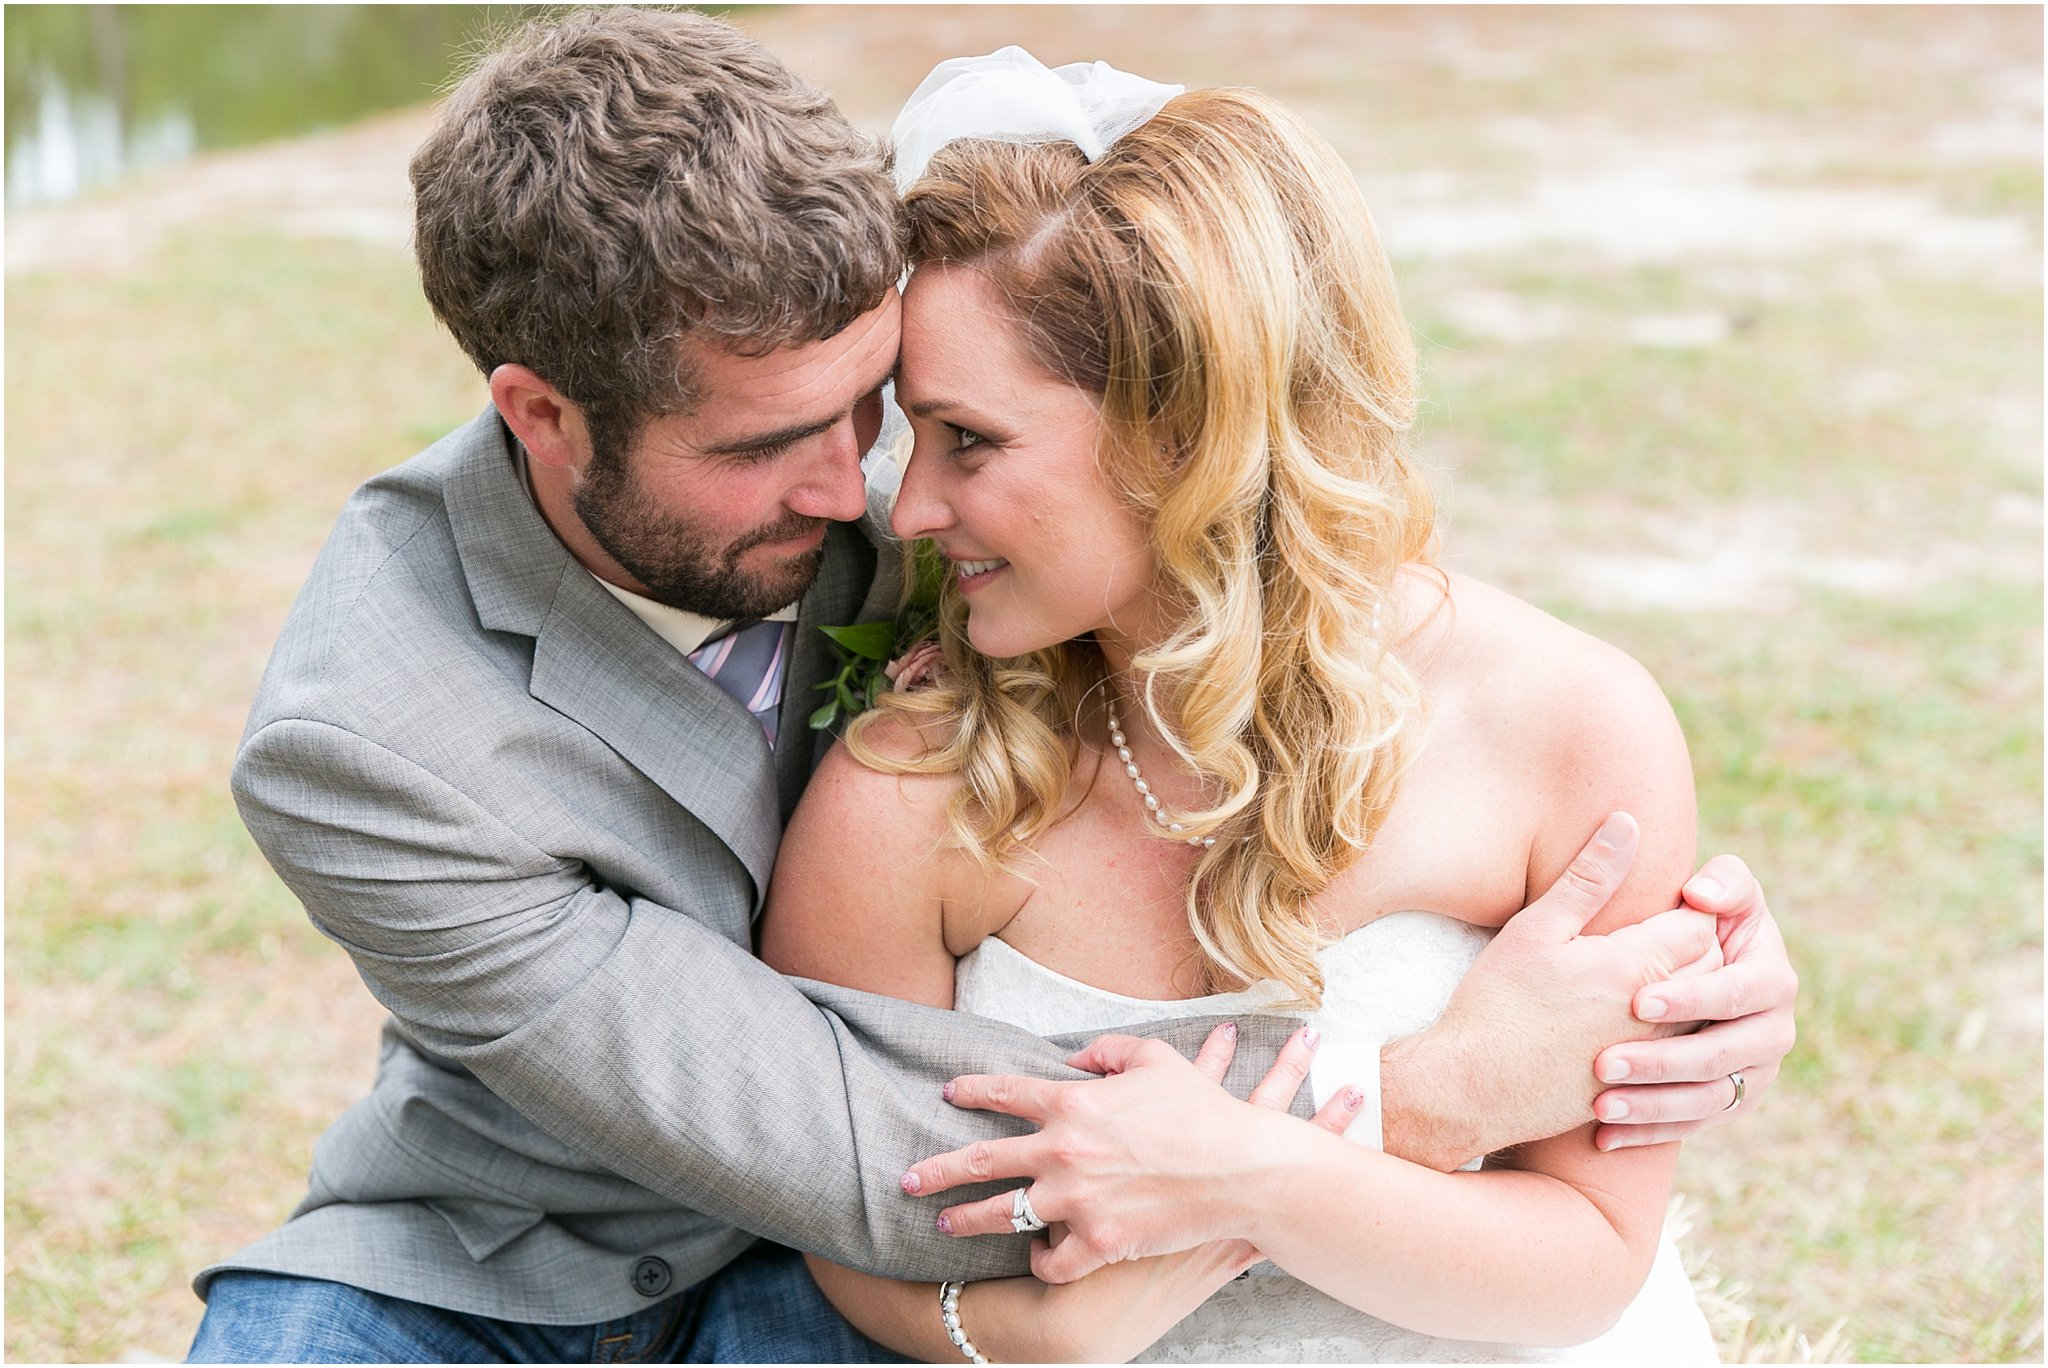 jessica_ryan_photography_wedding_virginia_beach_bluepetesrestaurant_wedding_0798